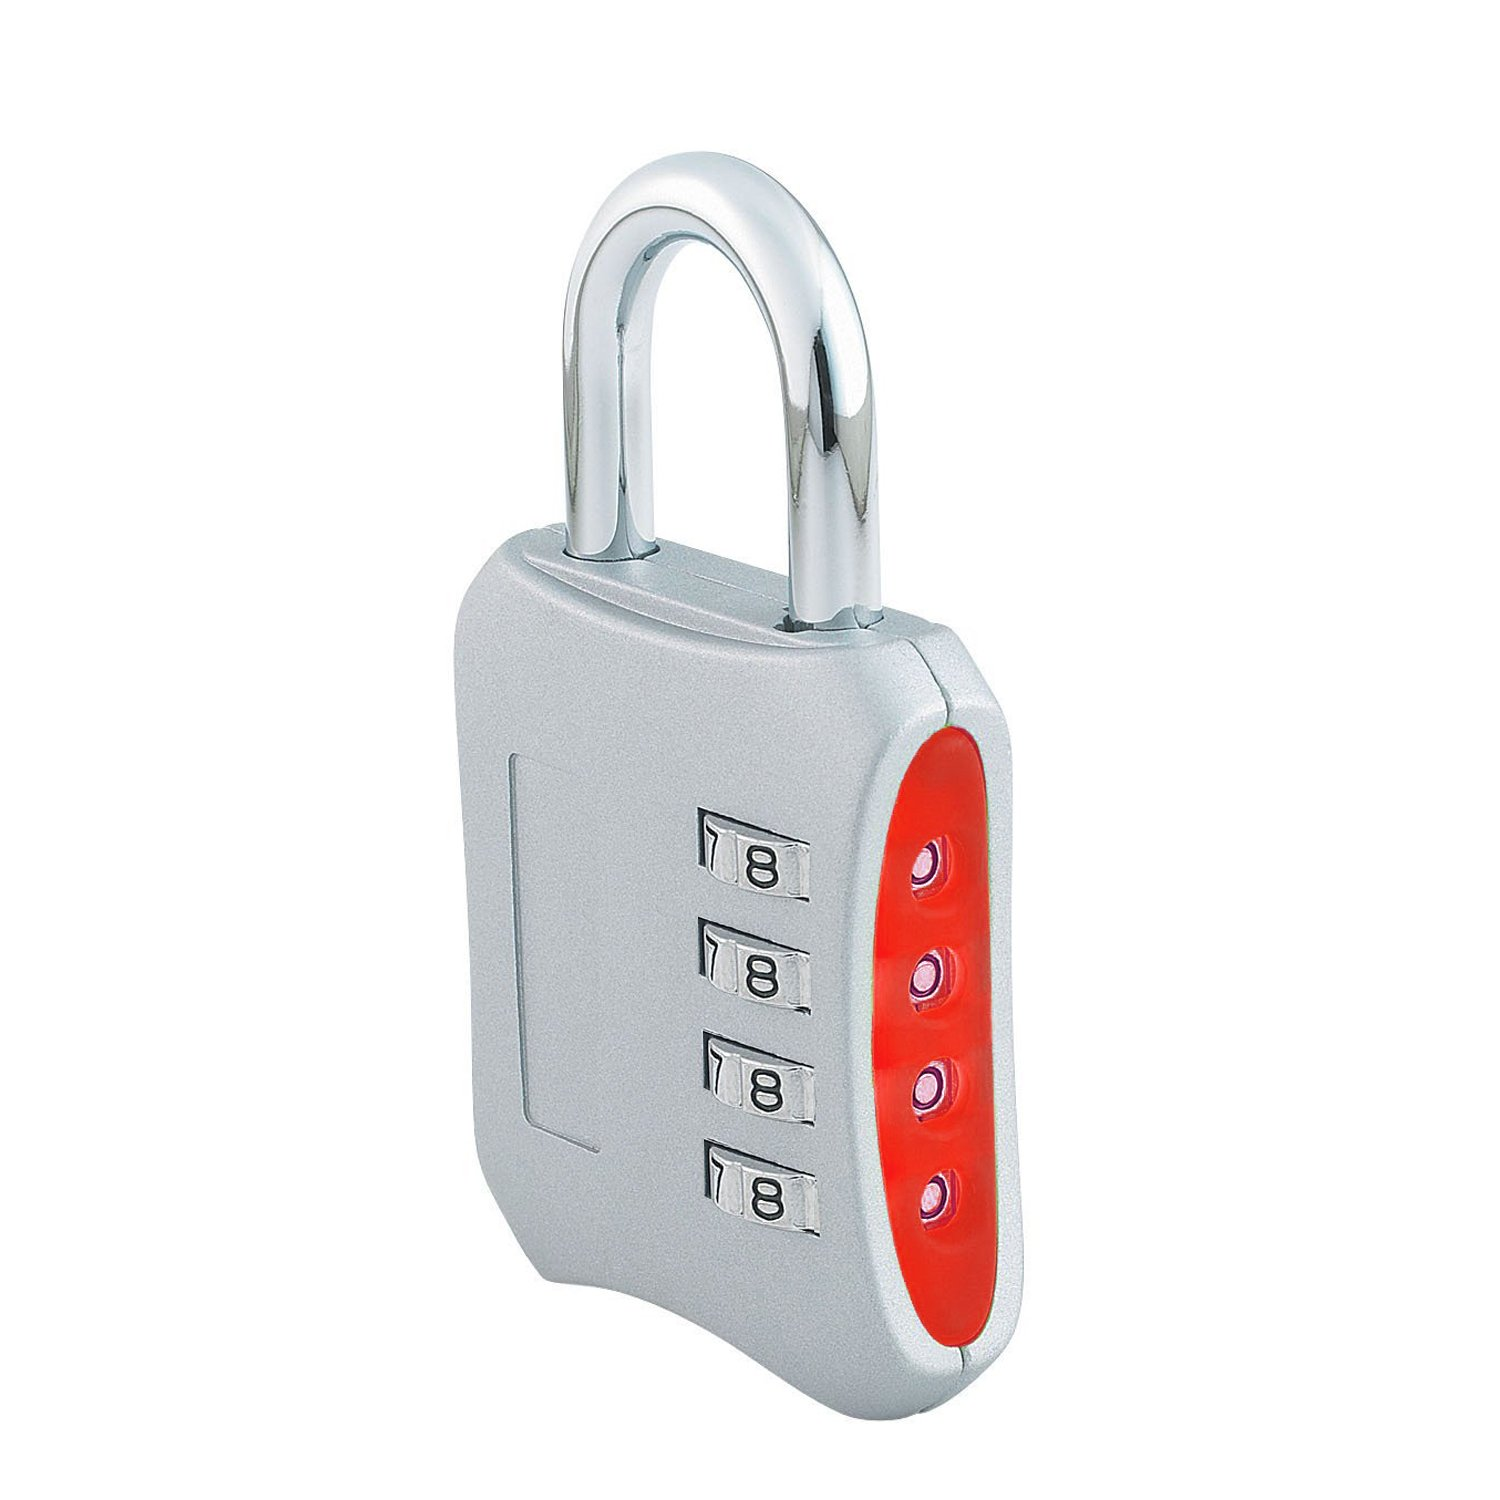 Combination Padlock 2-inch Gym Lock with 4 Digit Set-Your-Own-Combination (Silver) fxy